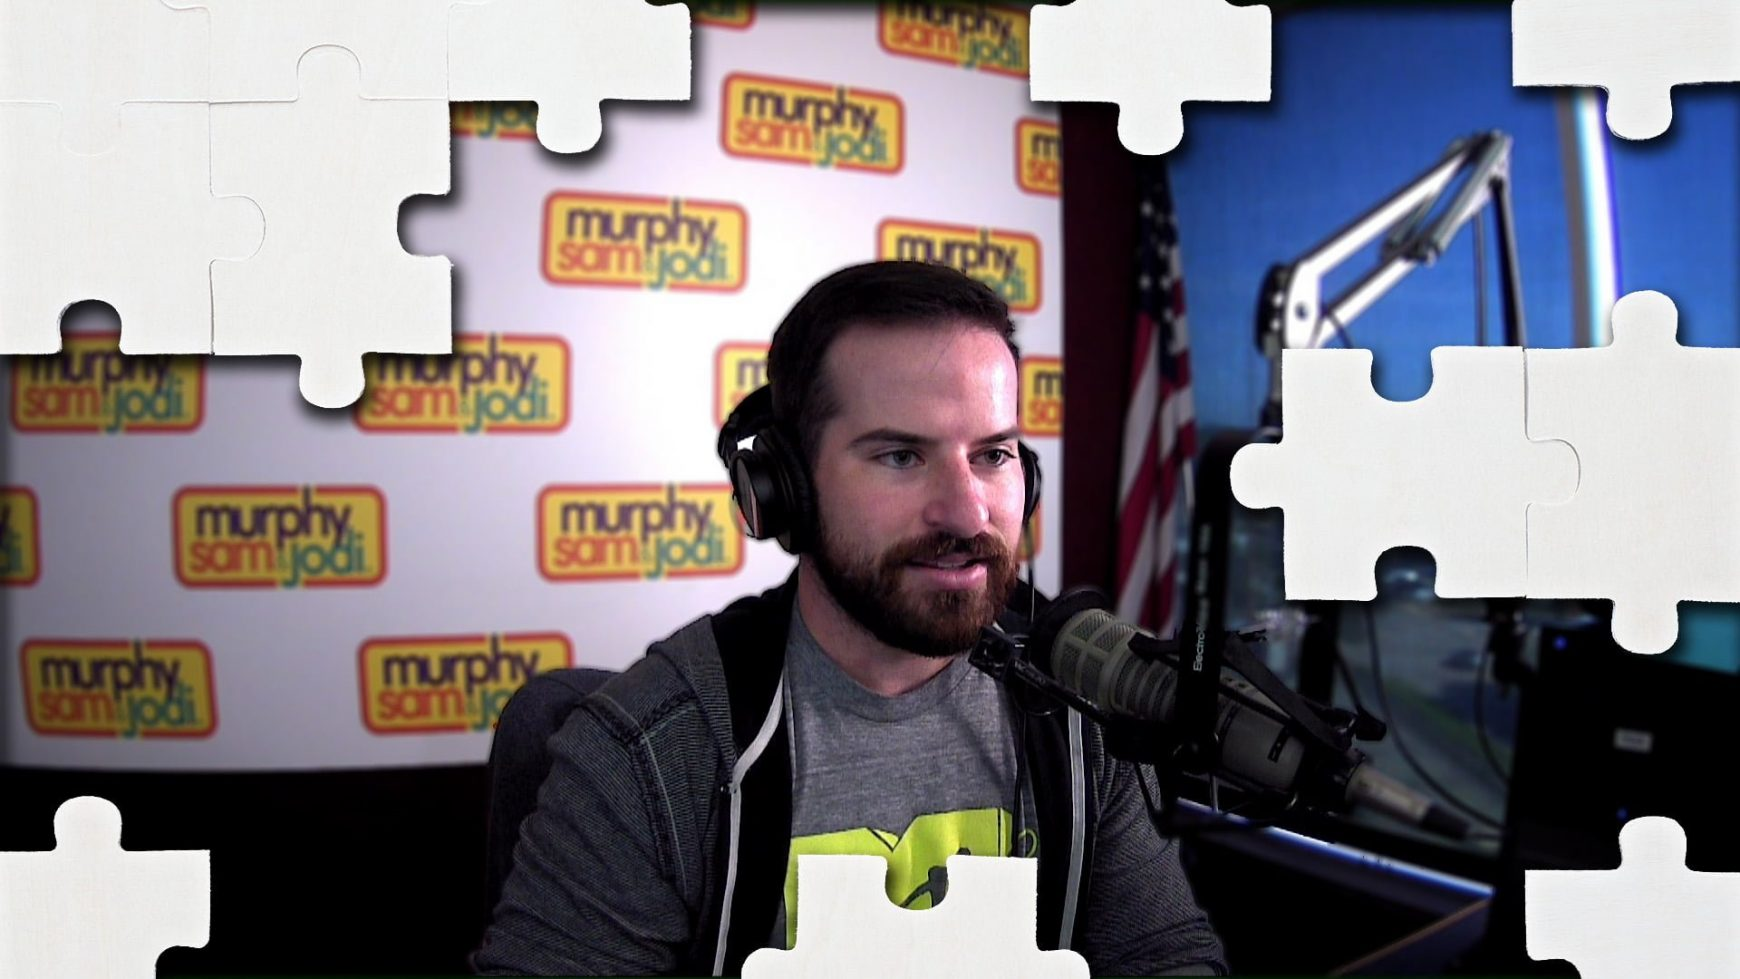 PODCAST: Producer David's Puzzling Deadline